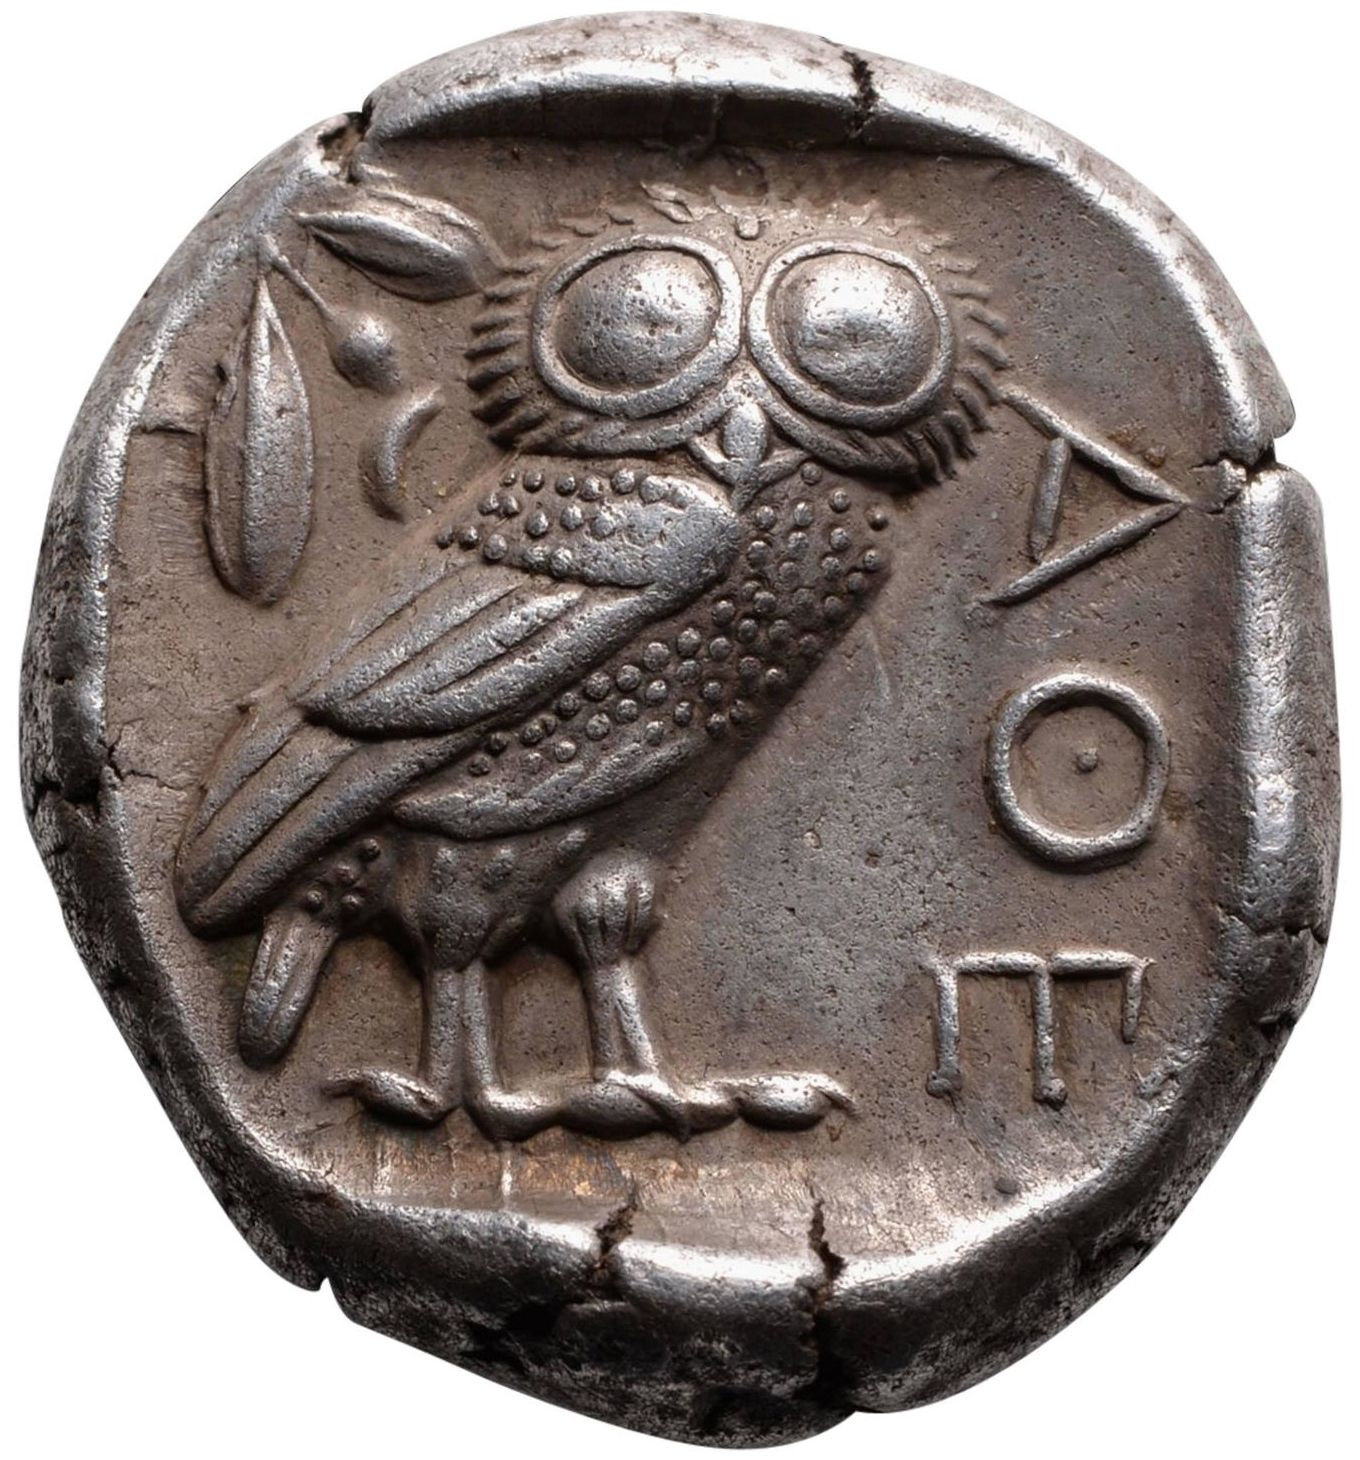 Rare Ancient Coin Ancient Athens Greek Silver Drachm Coins & Paper Money Atena Greece Owl Drachma The Latest Fashion Coins: Ancient